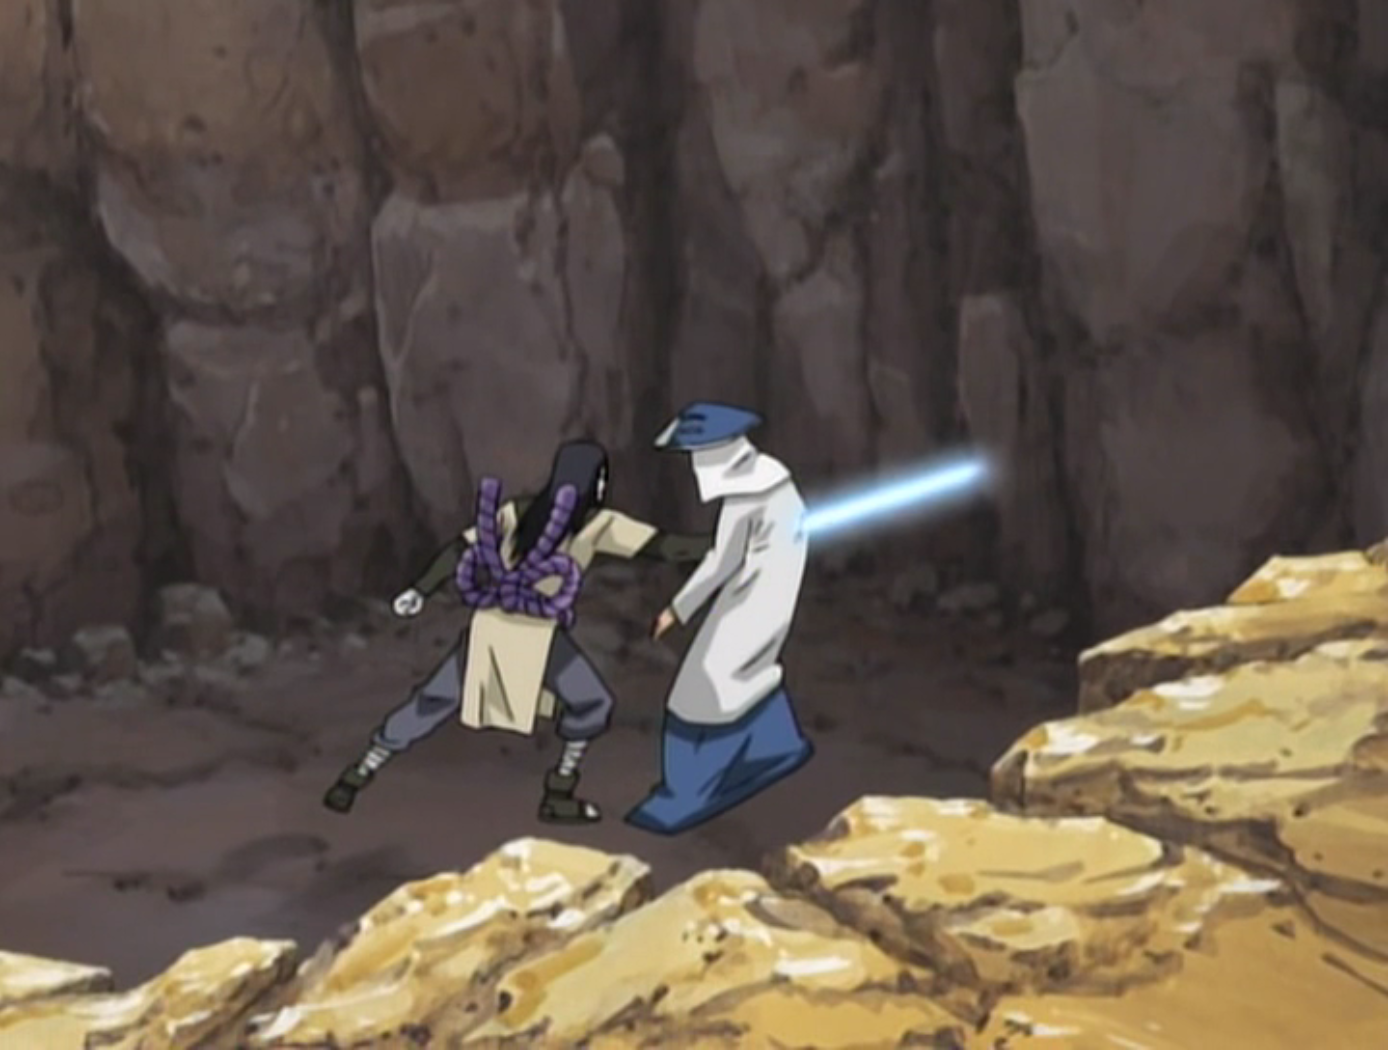 Yondaime Kazekage Vs Orochimaru Rasa is killed by Orochimaru